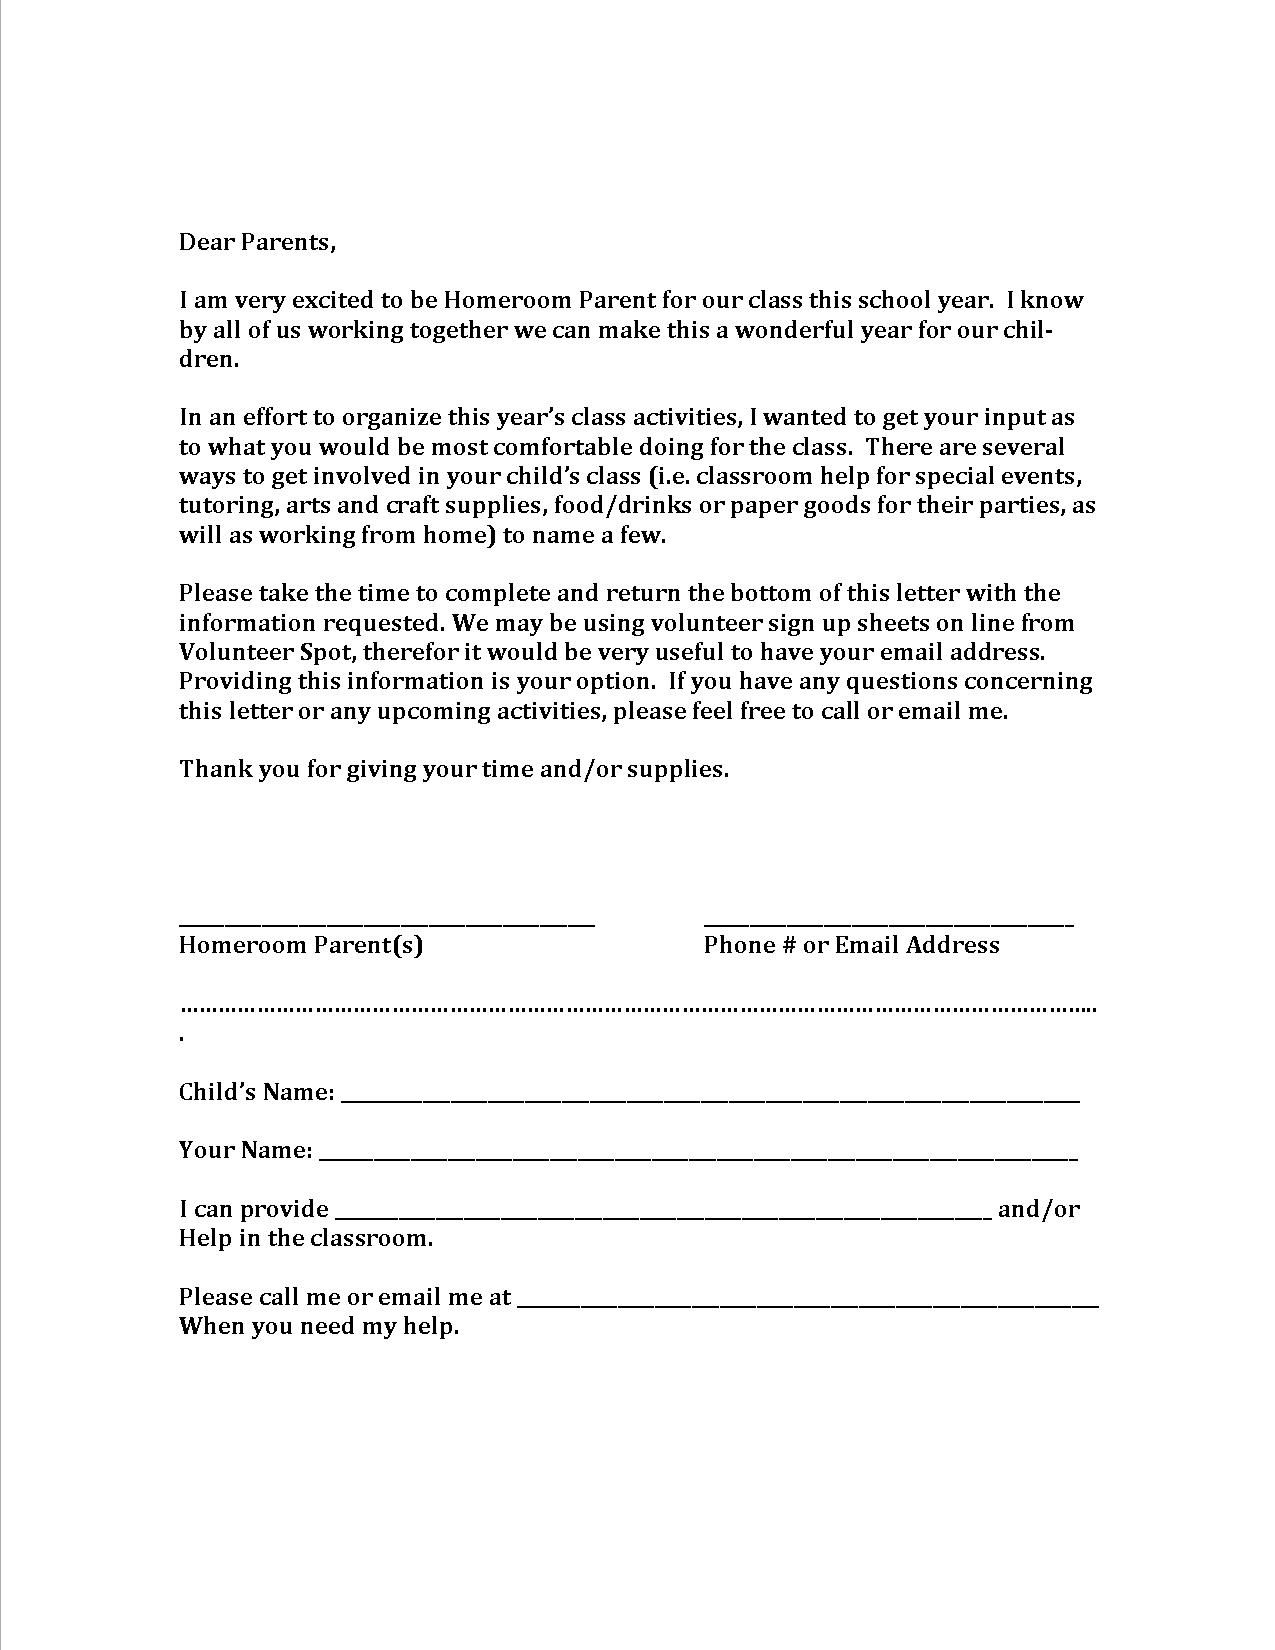 Volunteer letter template hdvolunteer letter template application volunteer letter template hdvolunteer letter template application letter sample thecheapjerseys Gallery